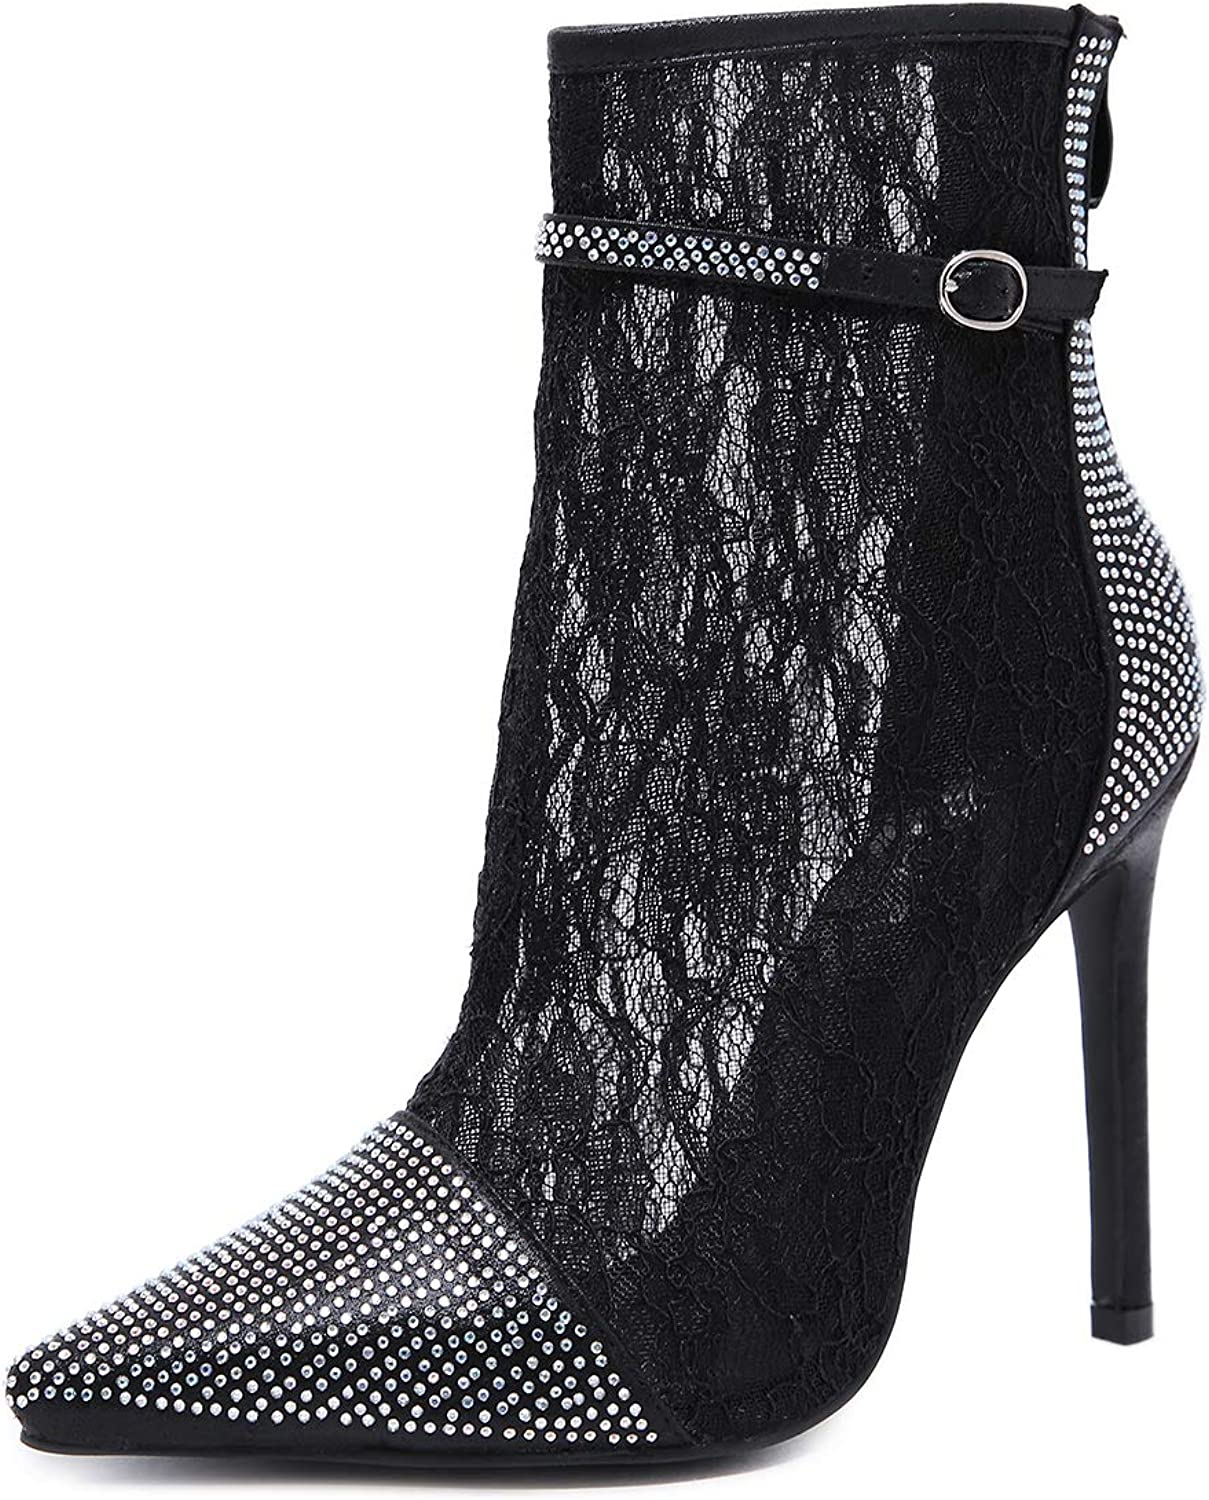 Women's Boots, Stiletto Heels, Pointed shoes, lace Sexy Sandals, Rhinestone Short Boots